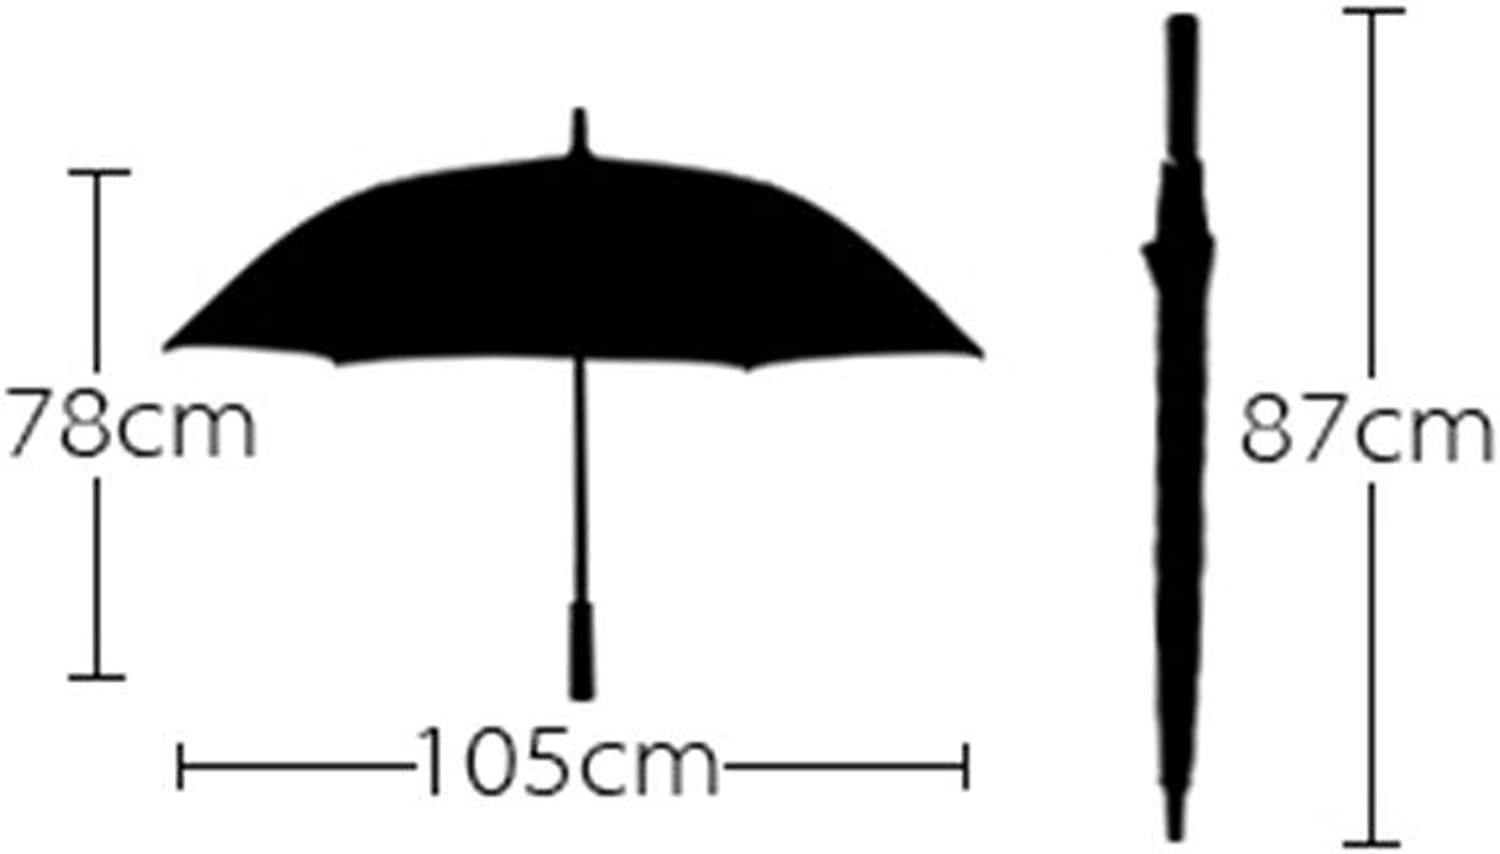 Umbrella, Double Long Handle Big Umbrella Commerce Anti-Uv Windproof Sun Predection Rain Foldable, Non-Slip Handle Windproof Umbrella, ZDS